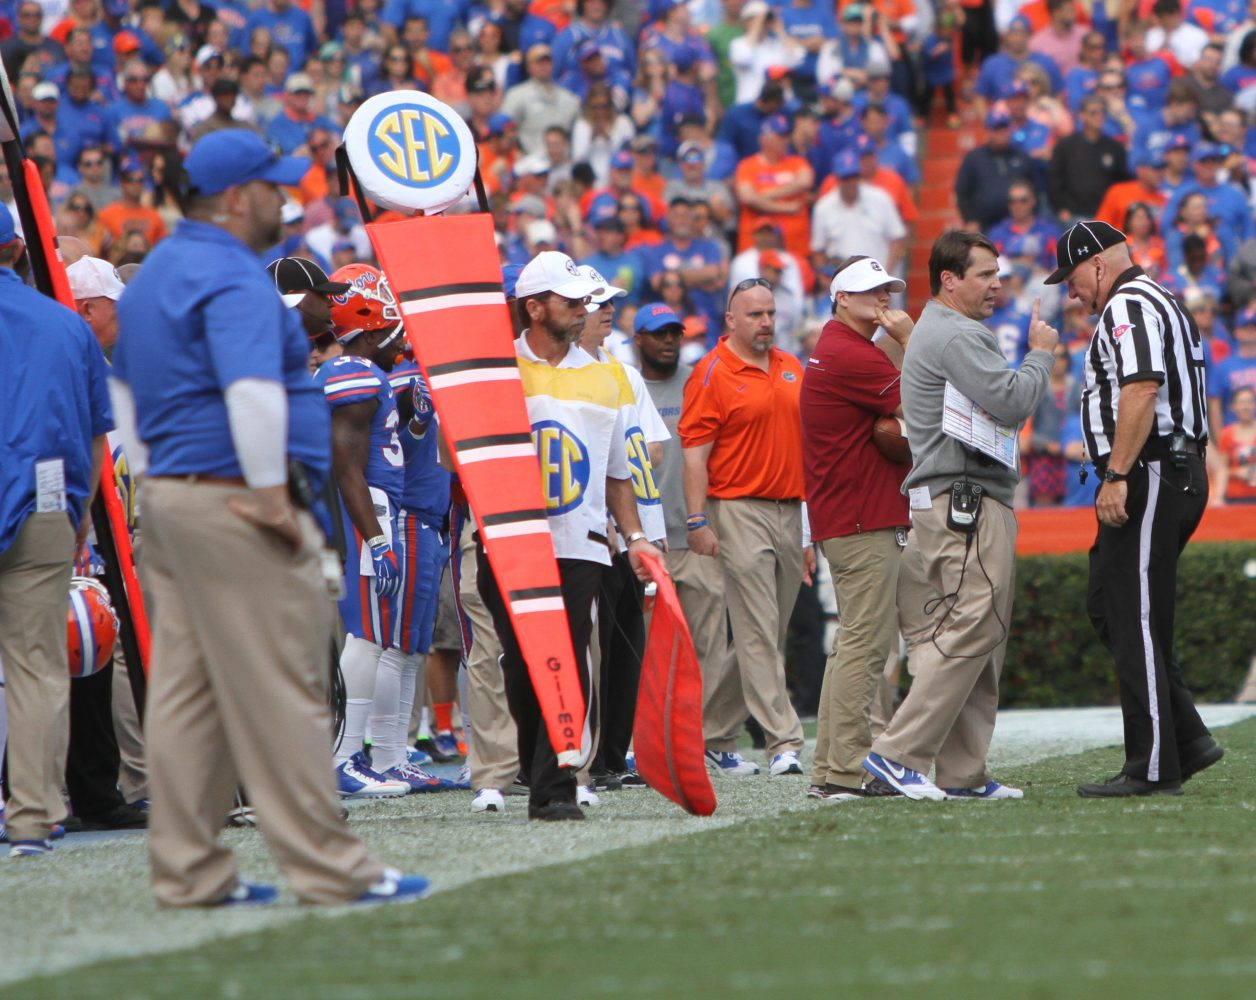 Florida Coach Will Muschamp discusses a previous play with the referee.